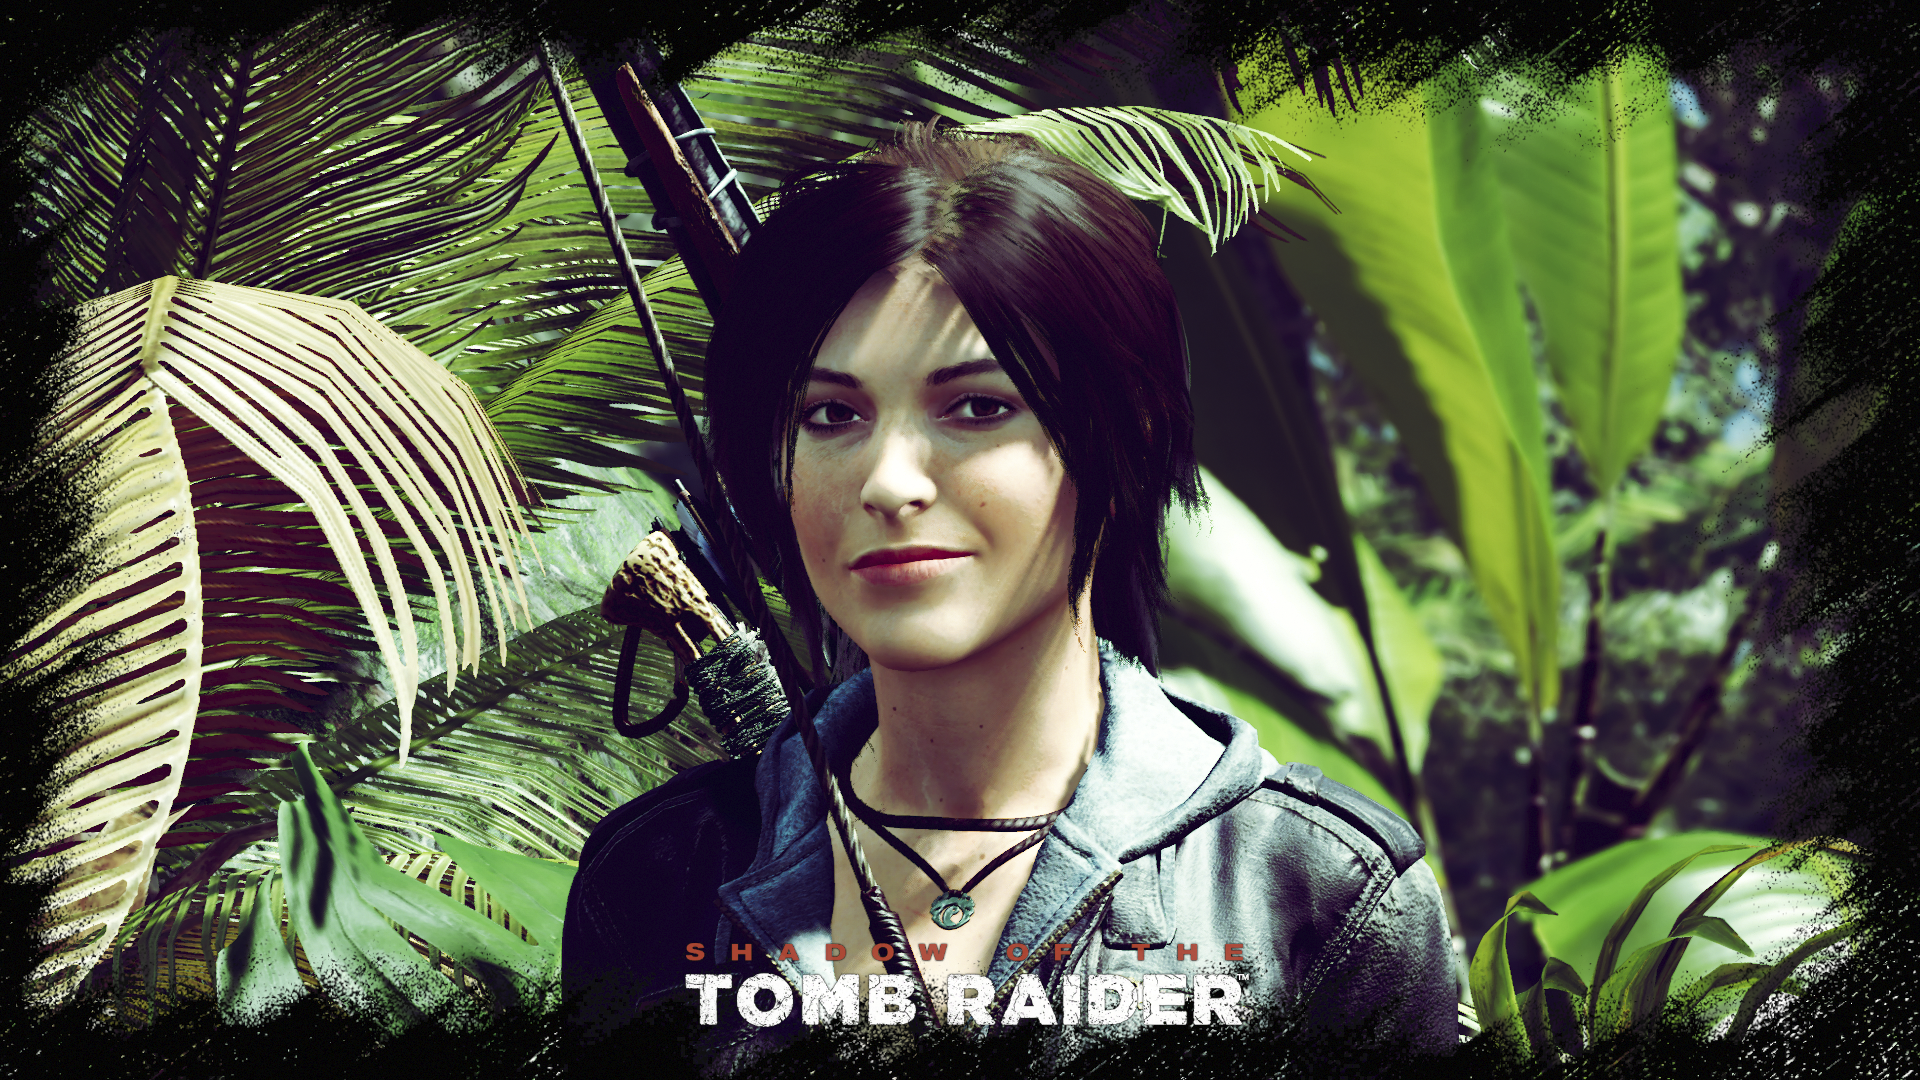 Shadow of the Tomb Raider Screenshot 2018.11.22 - 22.34.58.62.png - Shadow of the Tomb Raider